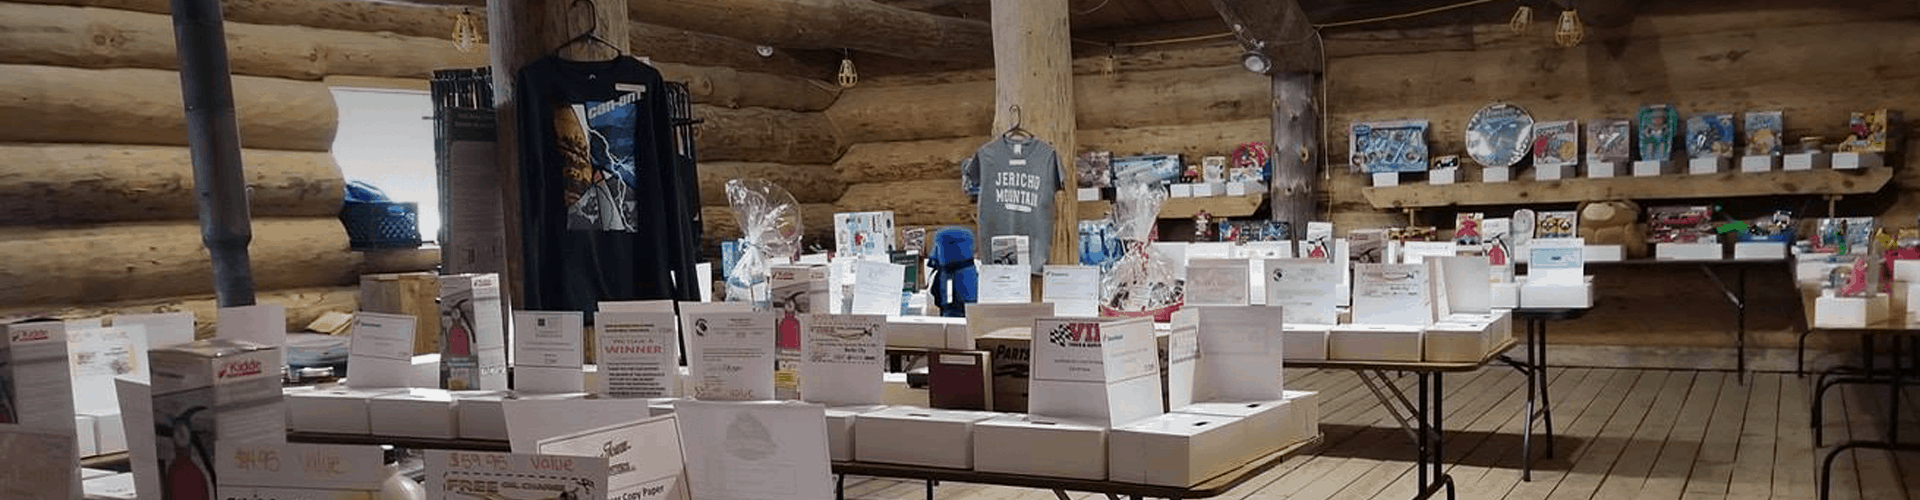 Androscoggin Valley Chamber of Commerce Annual Penny Sale